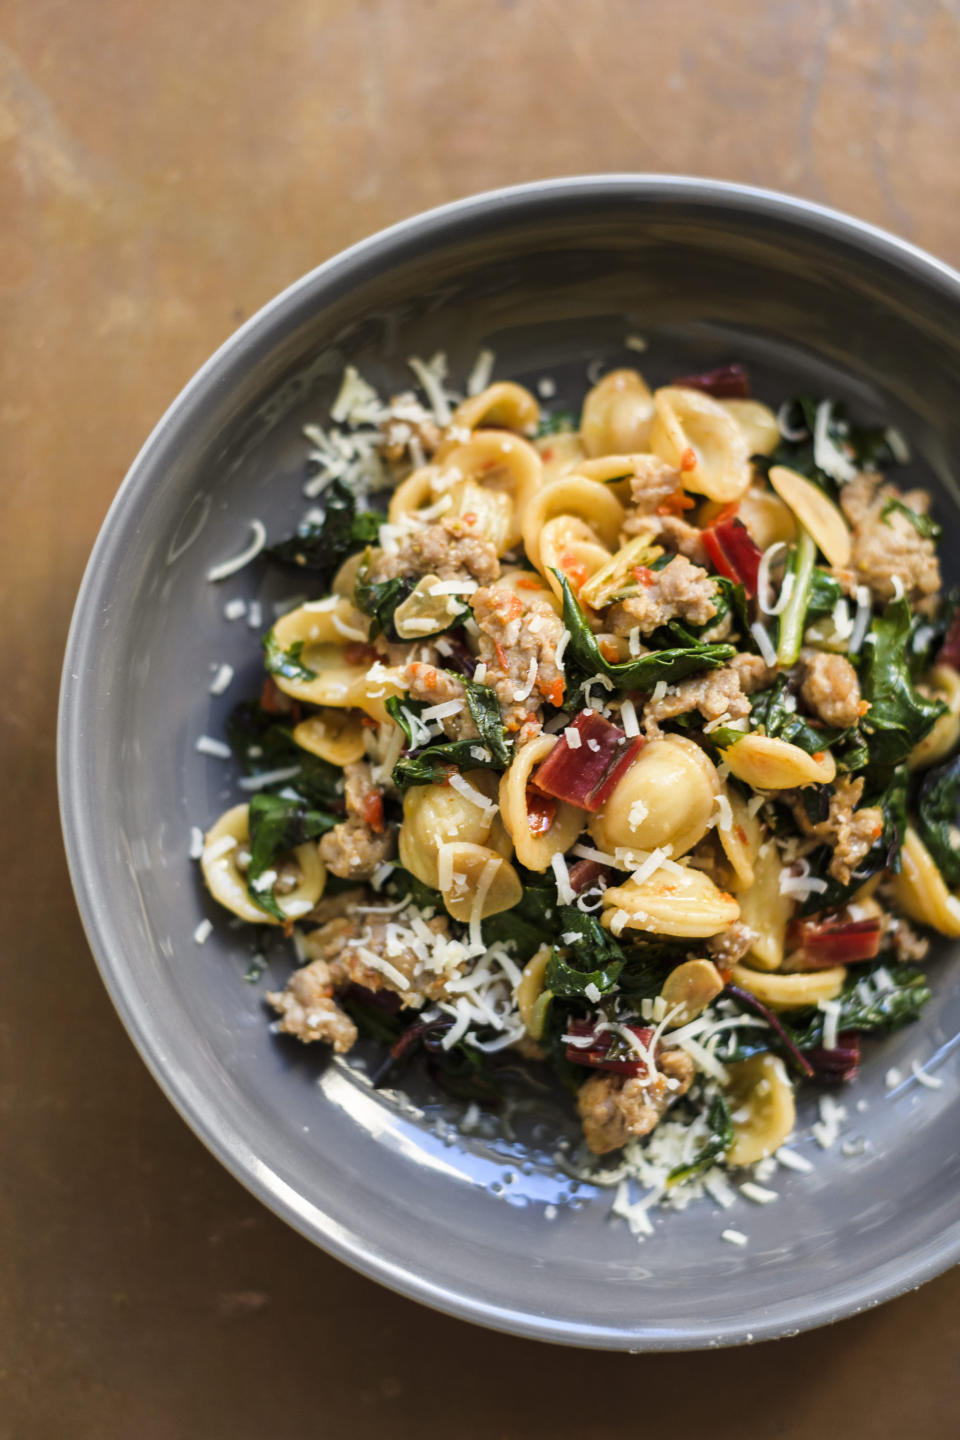 This image released by Milk Street shows a recipe for orecchiette with sausage and arugula. (Milk Street via AP)